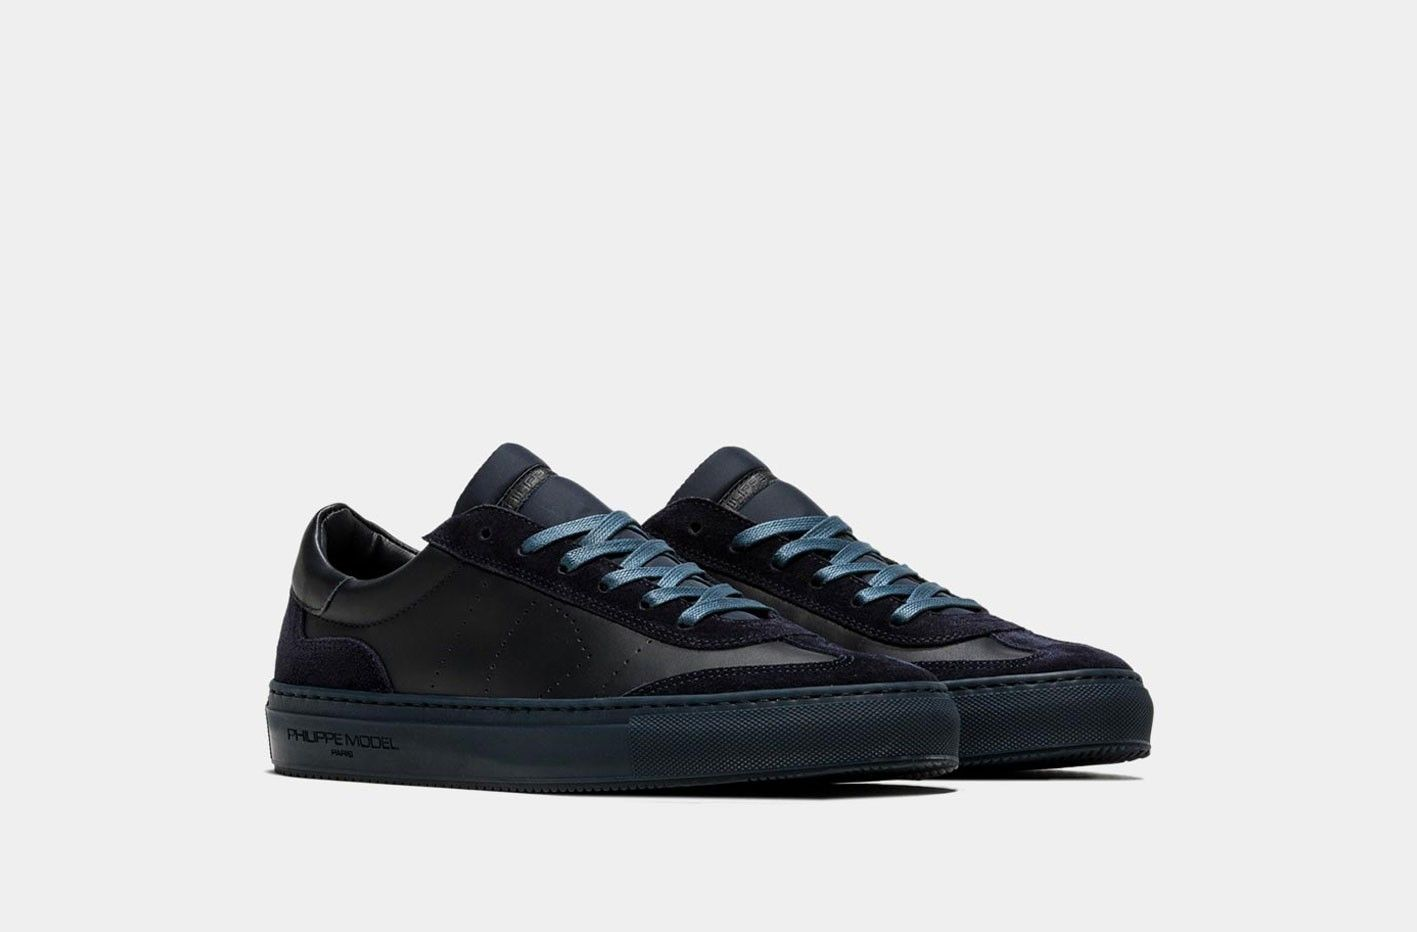 c76dadfb53 -50% PHILIPPE MODEL BELLEVILLE PELLE BLU | Outlet Firme Uomo Sneakers |  Shop Online: Boutique Irene & Mario